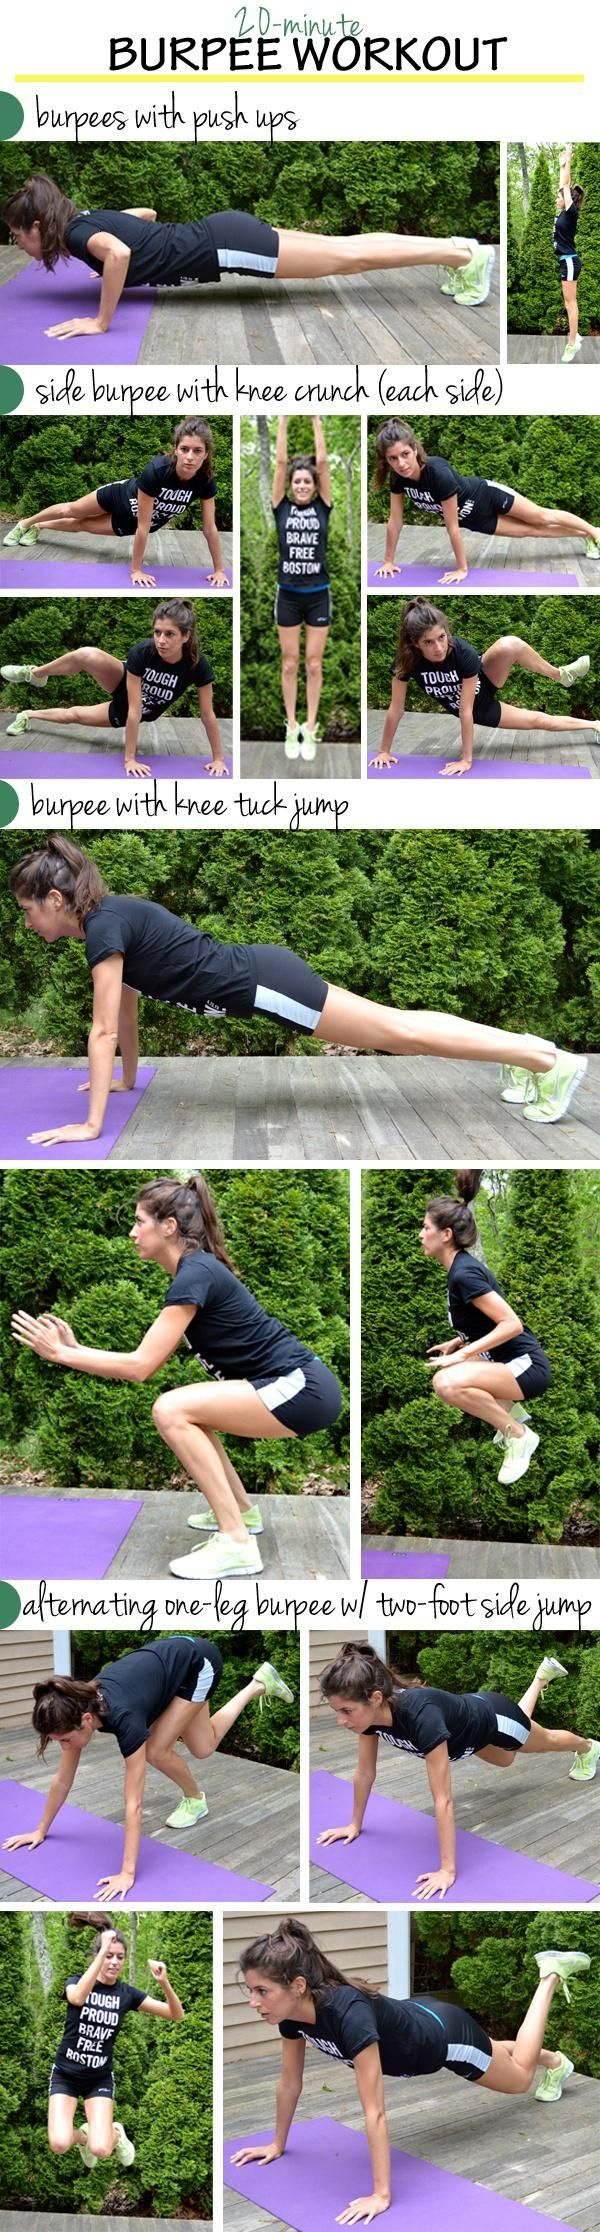 Great advanced workout for anyone. www.hubbubhealth.com